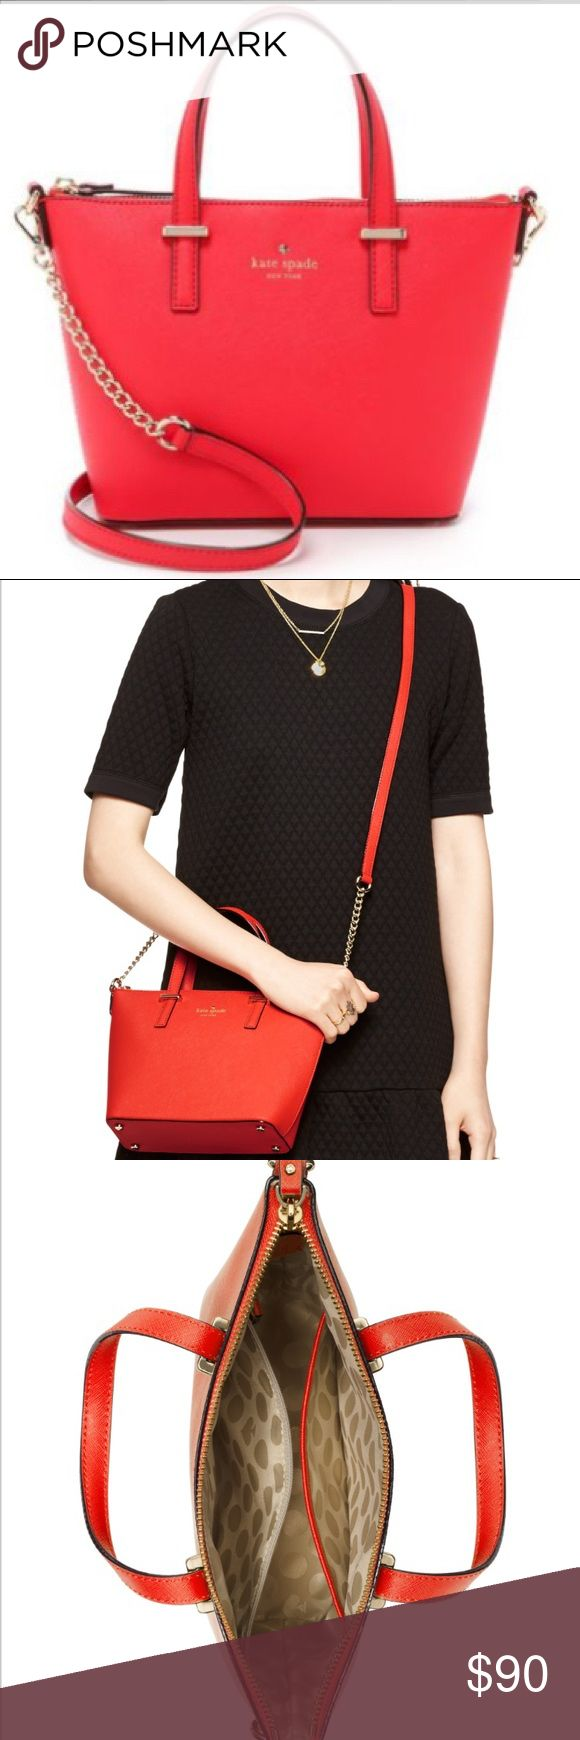 "NWT Kate Spade Cedar Street Harmony Crossbody Bag NWT Kate Spate Cedar Street Harmony Bag COLOR Cherry Liqeuer - vibrant red/orange color.  SIZE 7""h x 10.5""w at top x 3.25""d (this bag narrows in width from top 10.5"" to bottom 8"" drop length: 4"" handle, 22"" cross body MATERIAL crosshatch leather w/matching trim caroleena spade dot lining 14-karat gold plated hardware style # pxru5975 DETAILS crossbody bag w/ adjustable strap and zip top closure interior zip & double slide pockets kate spade…"